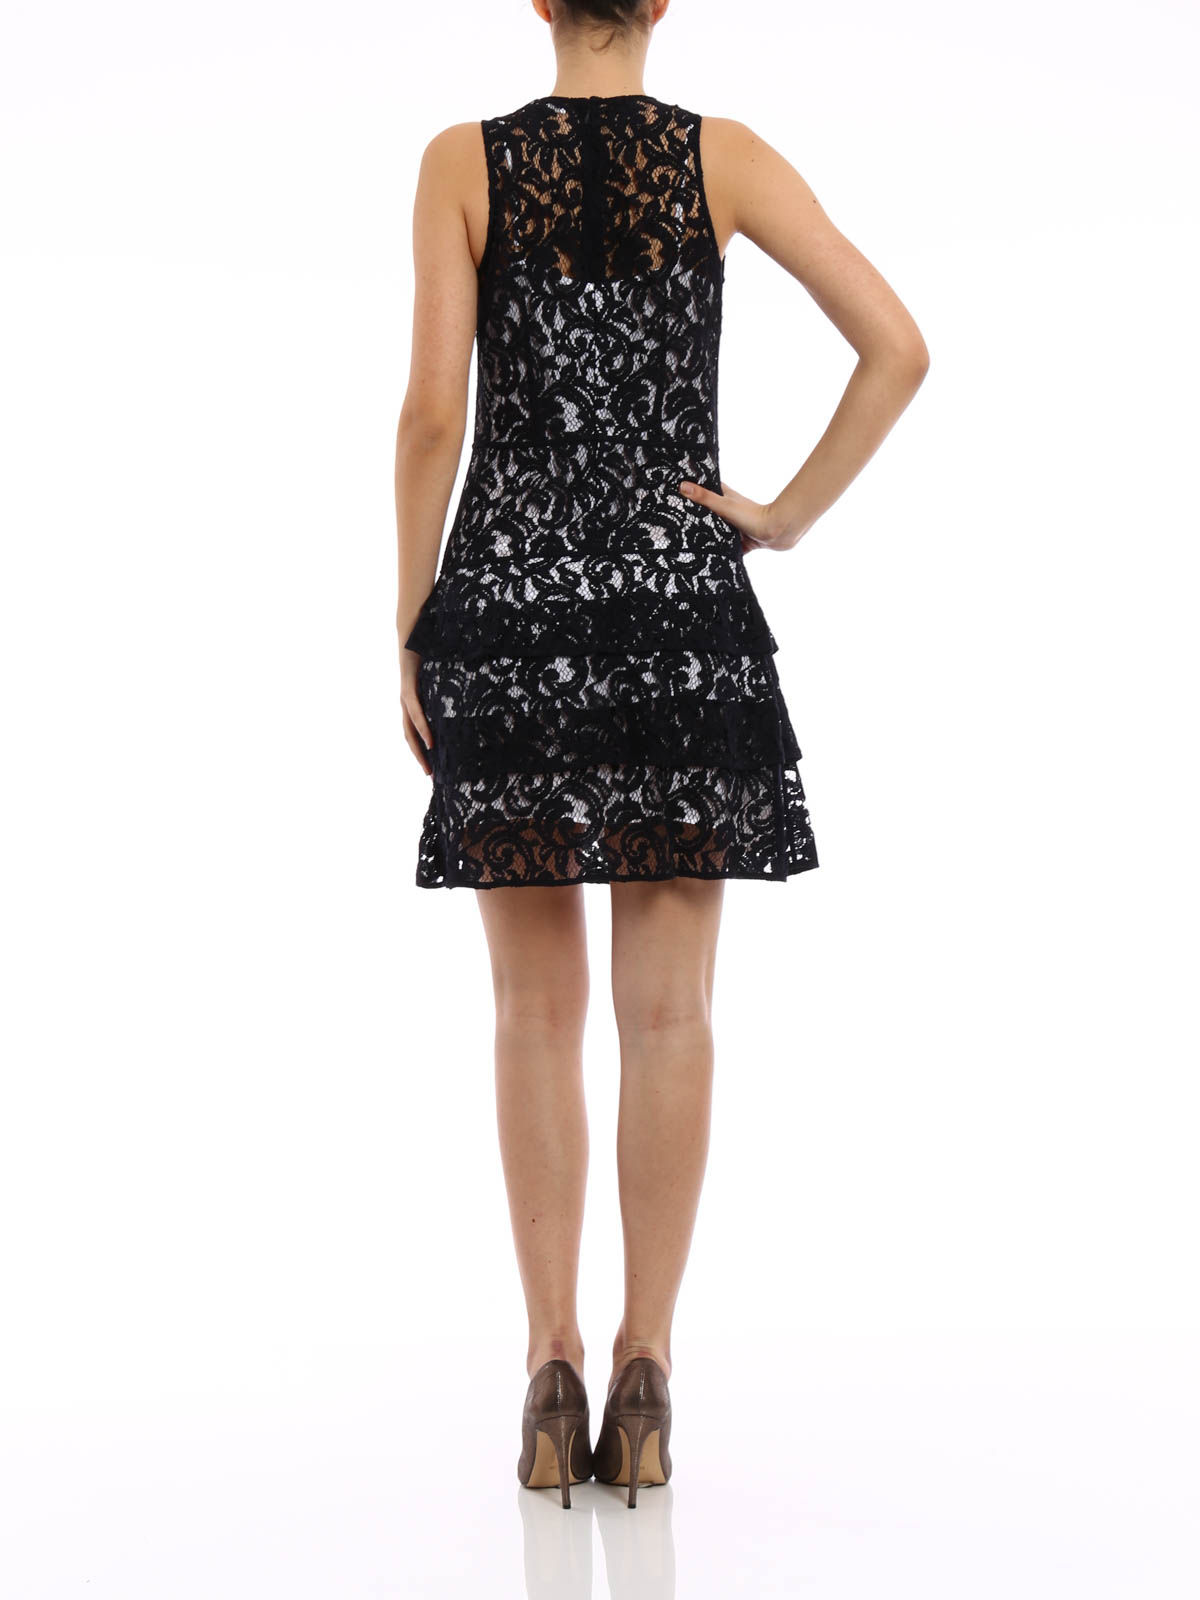 Lace dress online shop